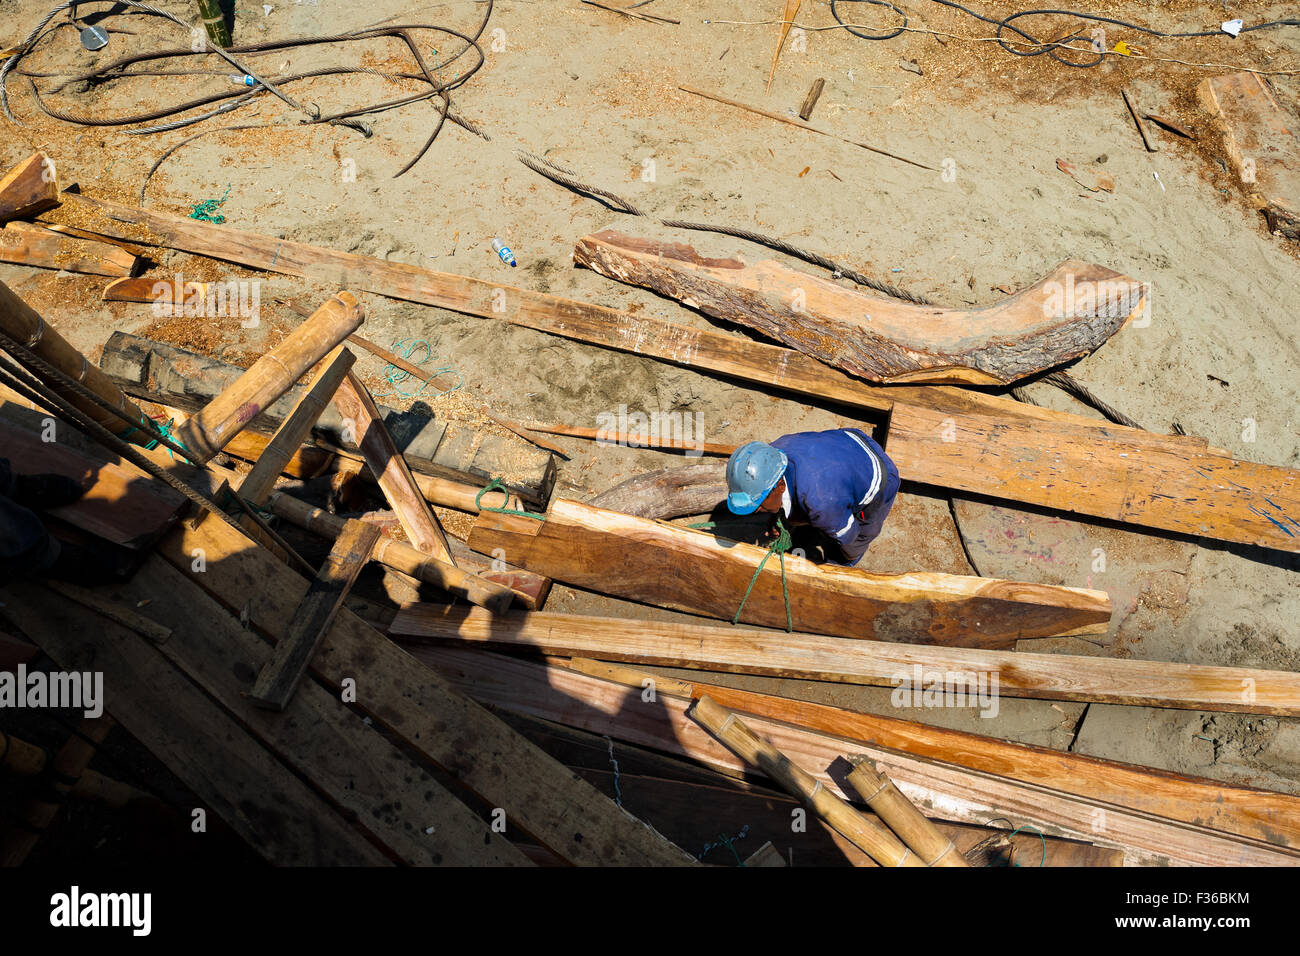 An Ecuadorian shipbuilding worker builds a traditional wooden fishing vessel in an artisanal shipyard in Manta, - Stock Image